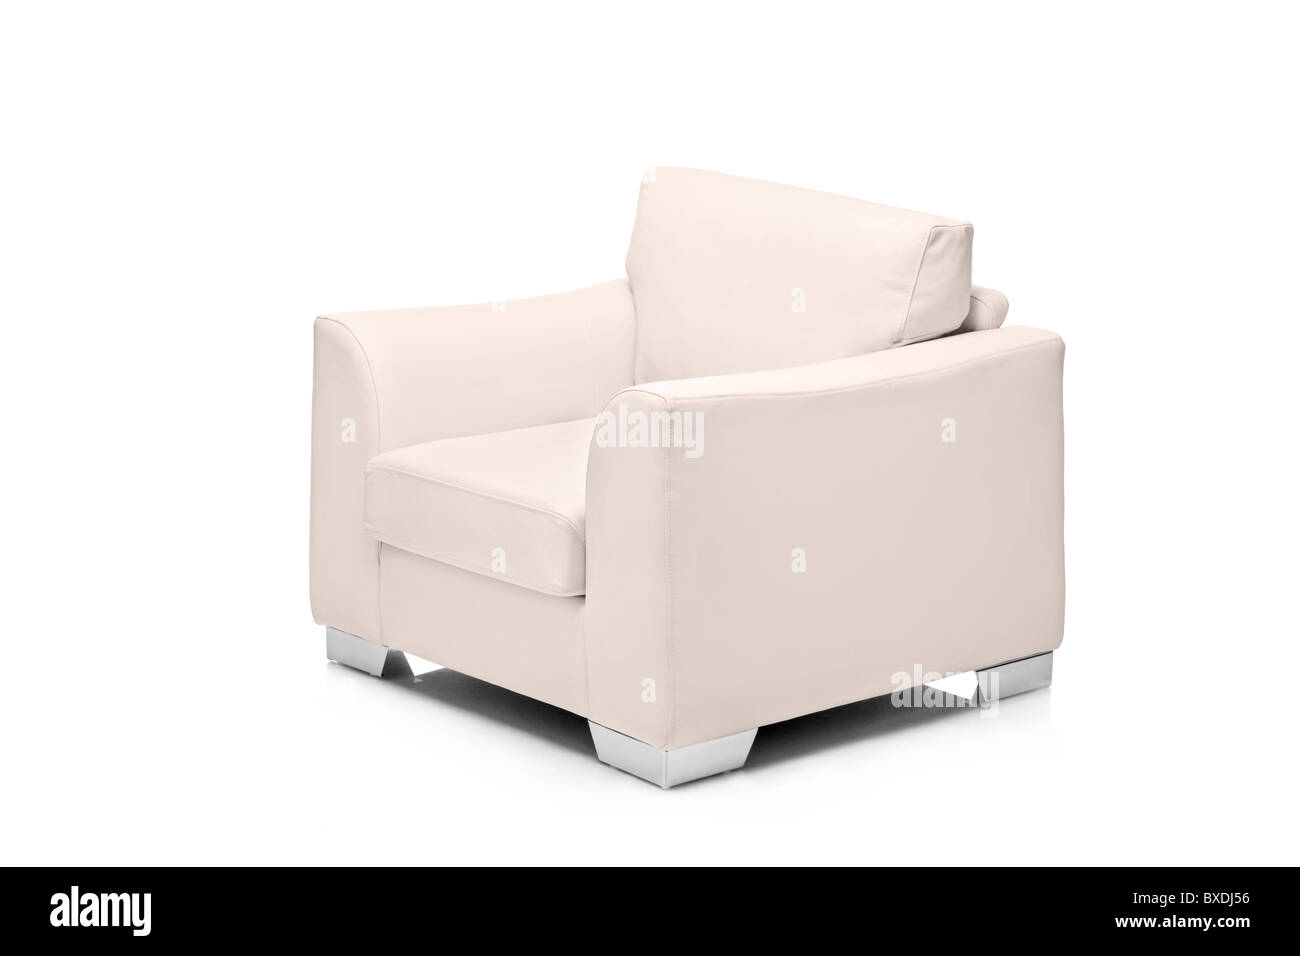 A studio shot of a leather white armchair - Stock Image